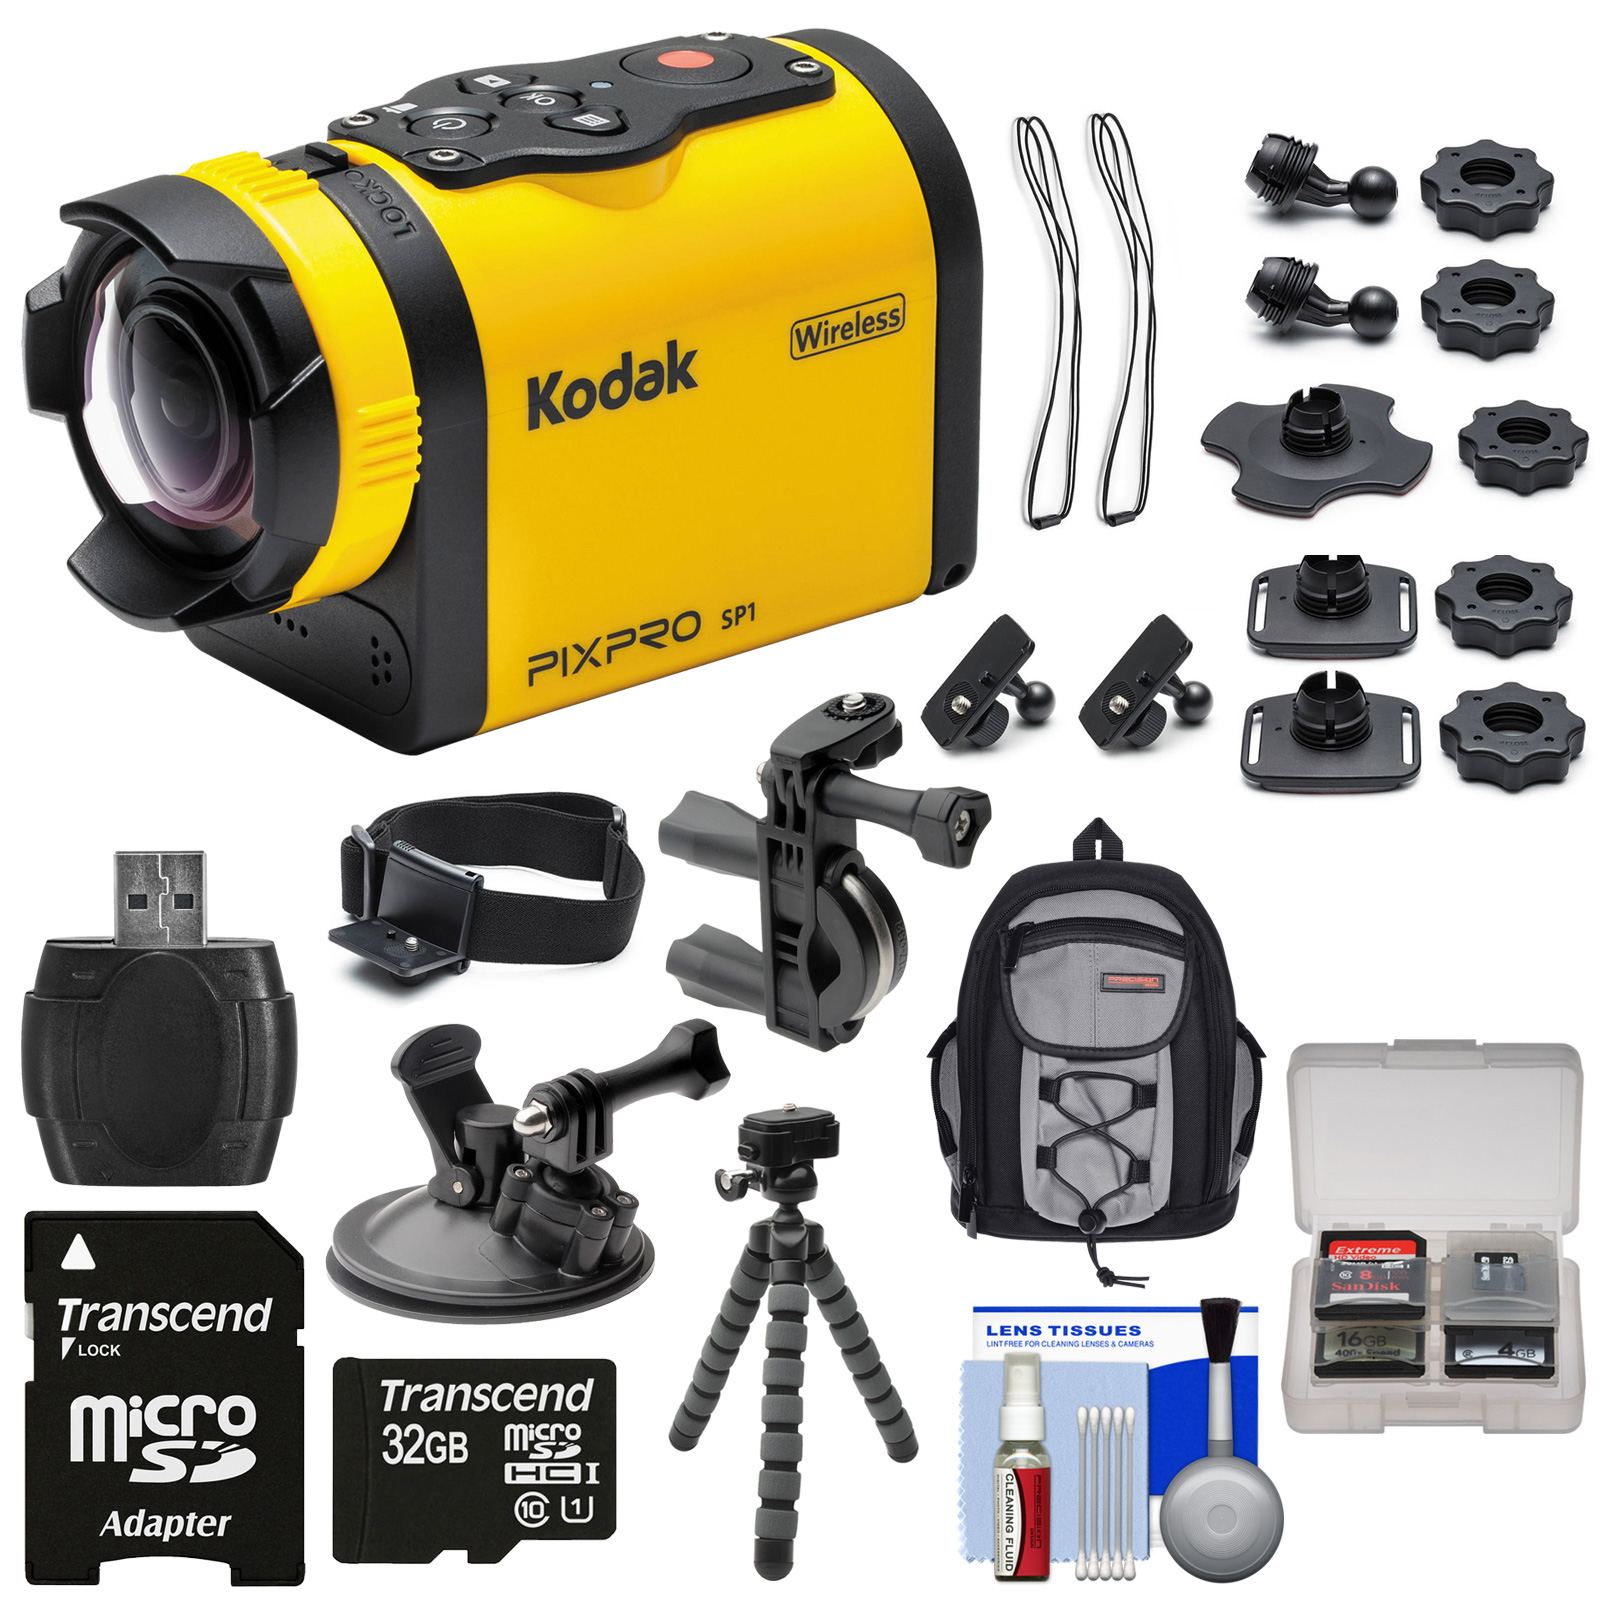 Kodak PixPro SP1 Video Action Camera Camcorder - Aqua Sport Pack with Handlebar & Suction Cup Mounts + 32GB Card + Backpack + Tripod + Kit PixPro SP1